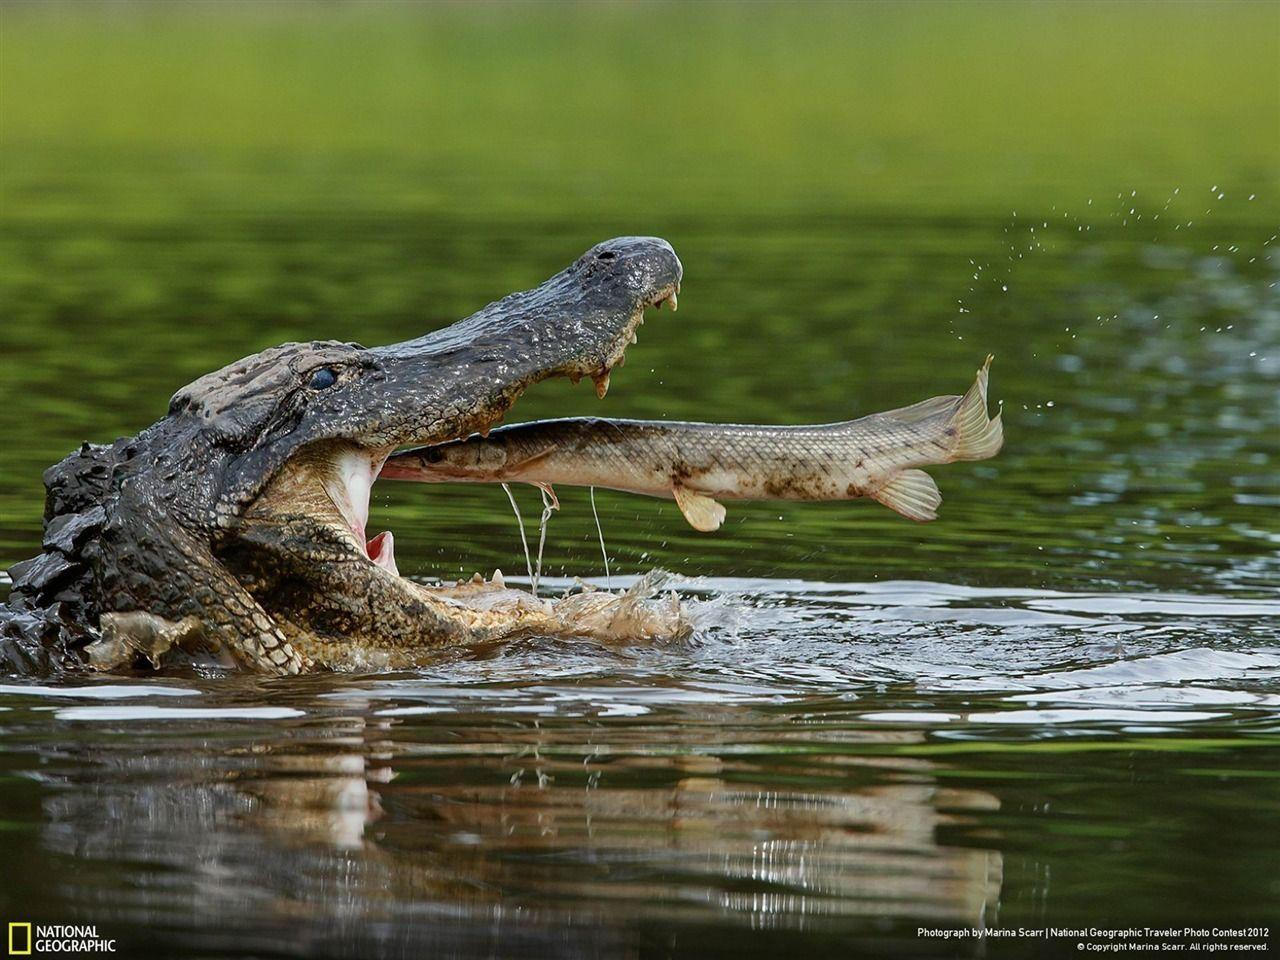 American Alligator-National Geographic Wallpaper - 1280x960 ...